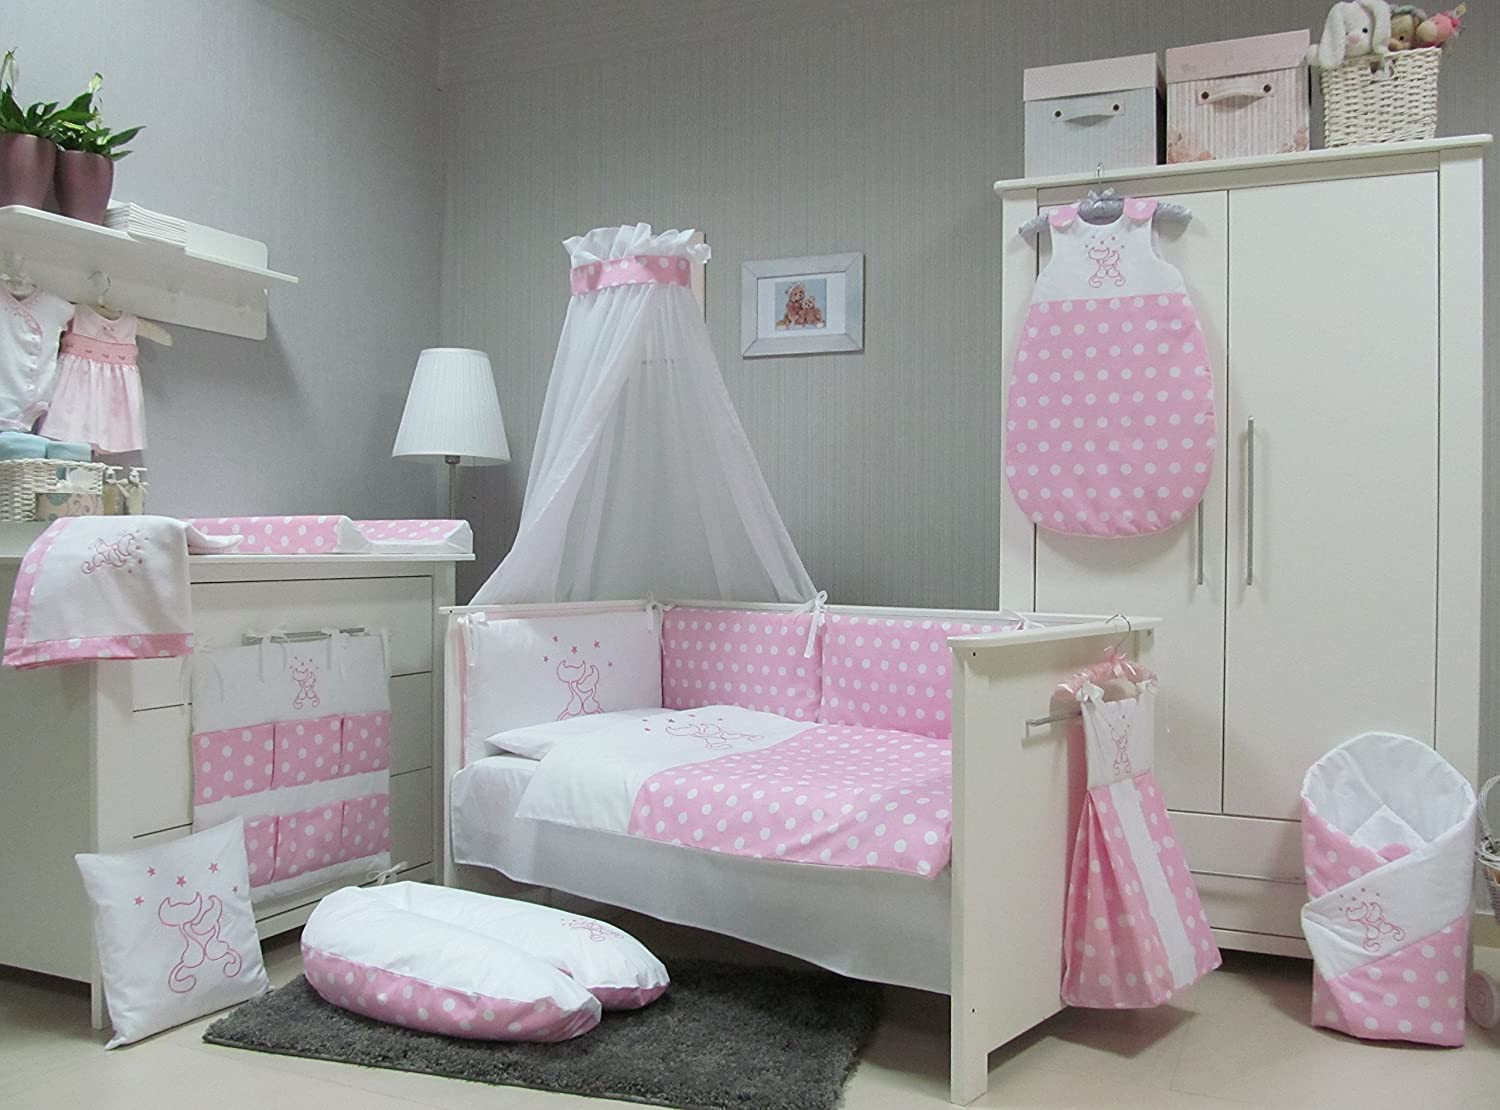 baby bettw sche set punkte cats 4tlg bett set 135 100 voile babybett 140 70 ebay. Black Bedroom Furniture Sets. Home Design Ideas